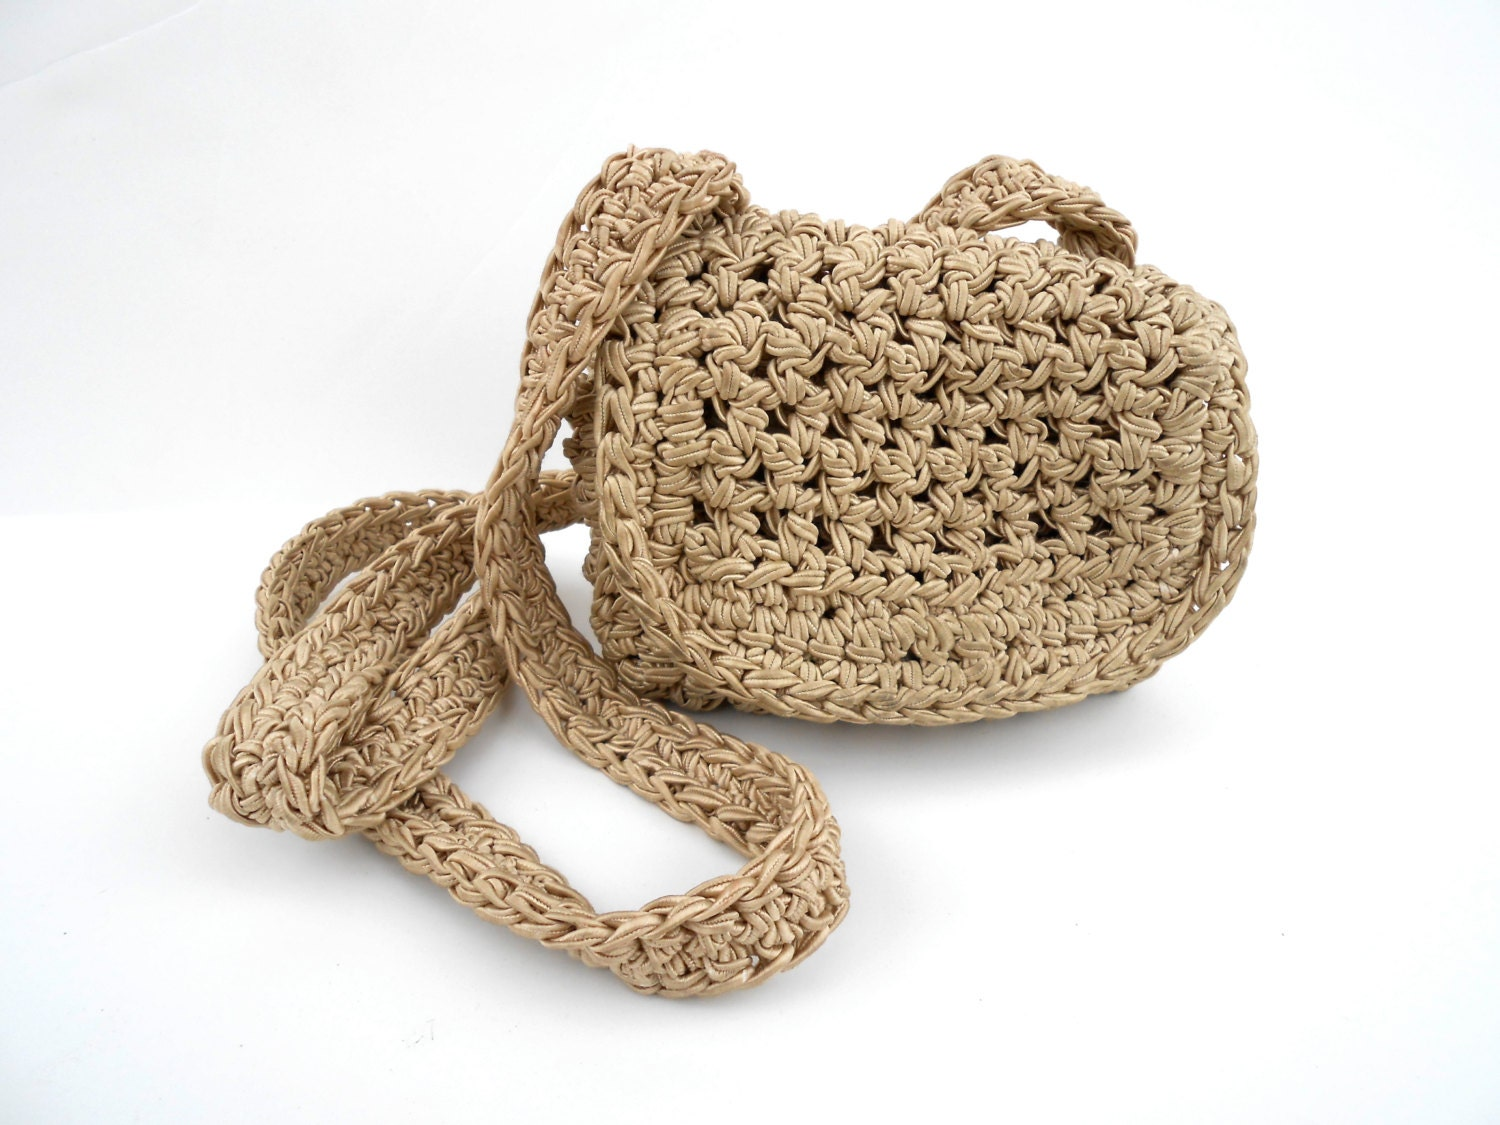 Crochet Hippie Bag : Vintage Crochet Purse Hippie 70s Cross Bag Tan by BurntToastVTG